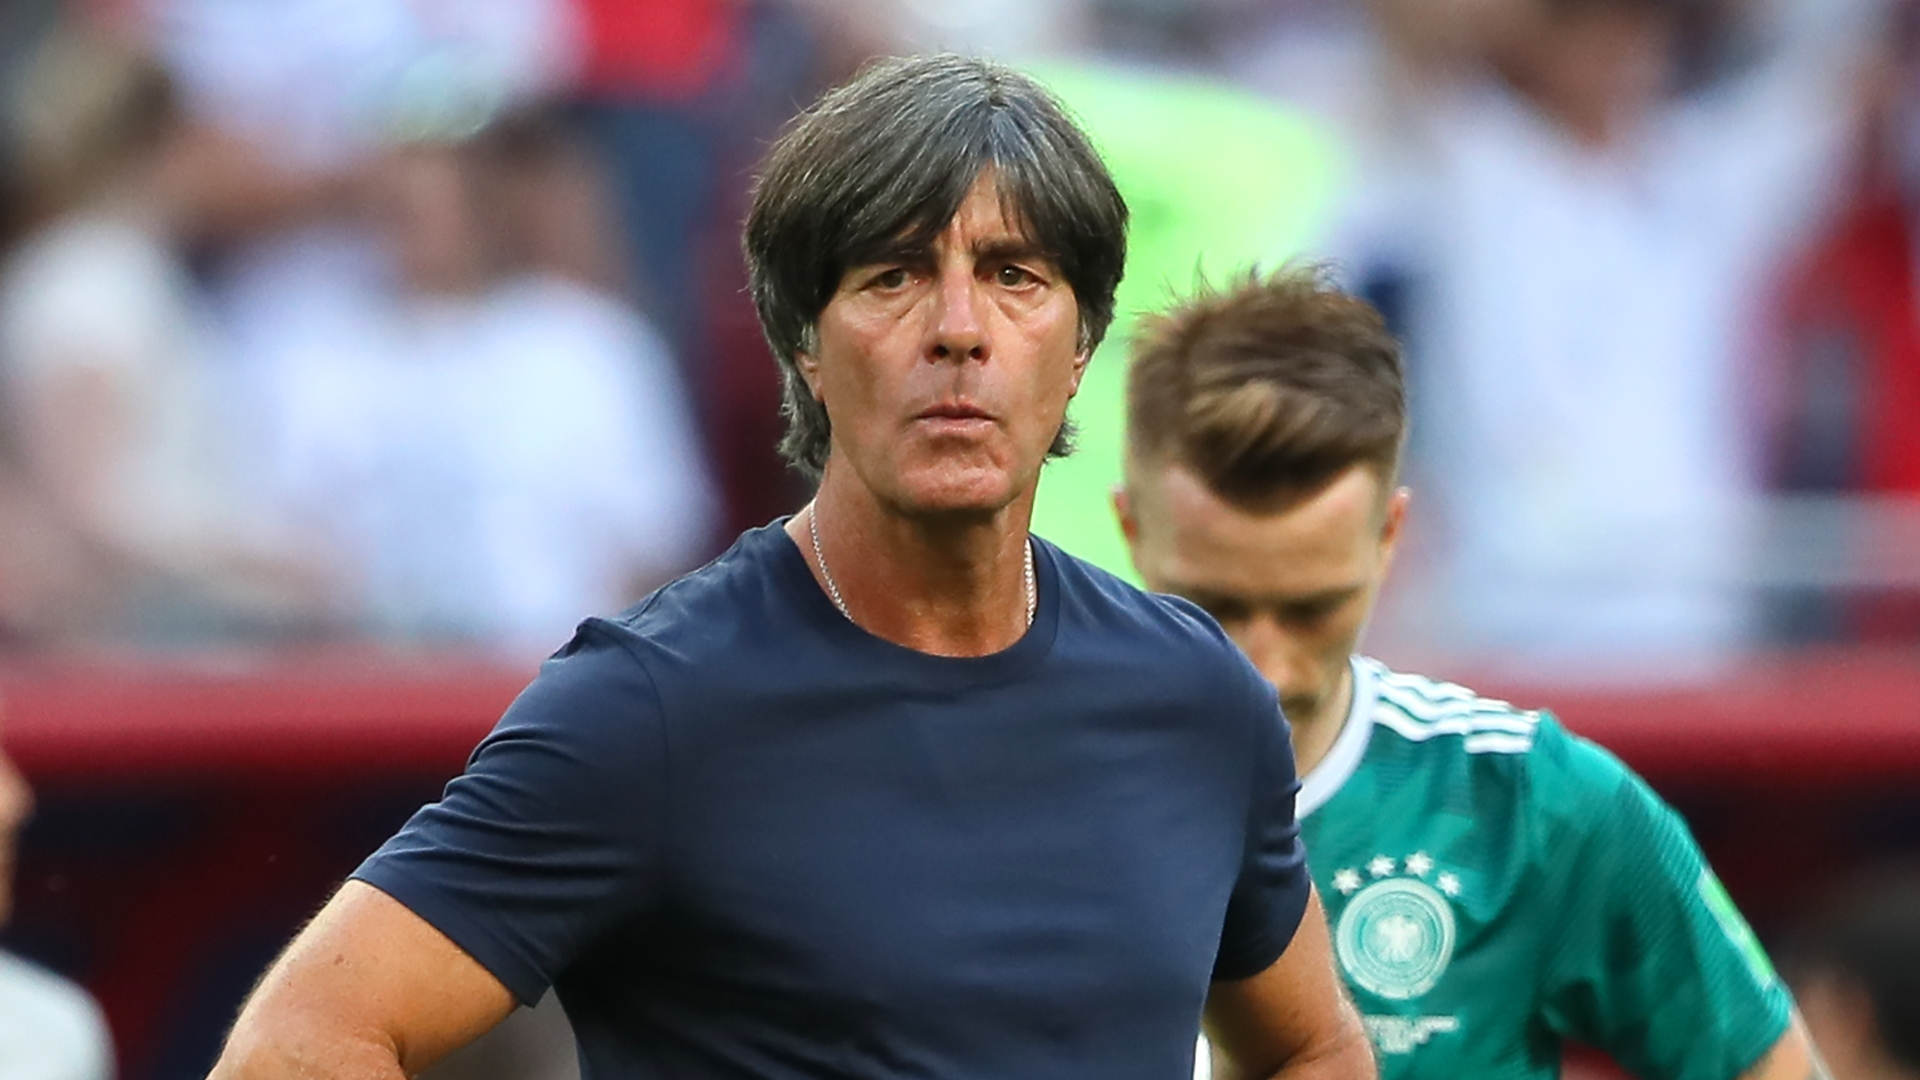 Video: 'We need big changes' - Low after Germany's shock World Cup exit